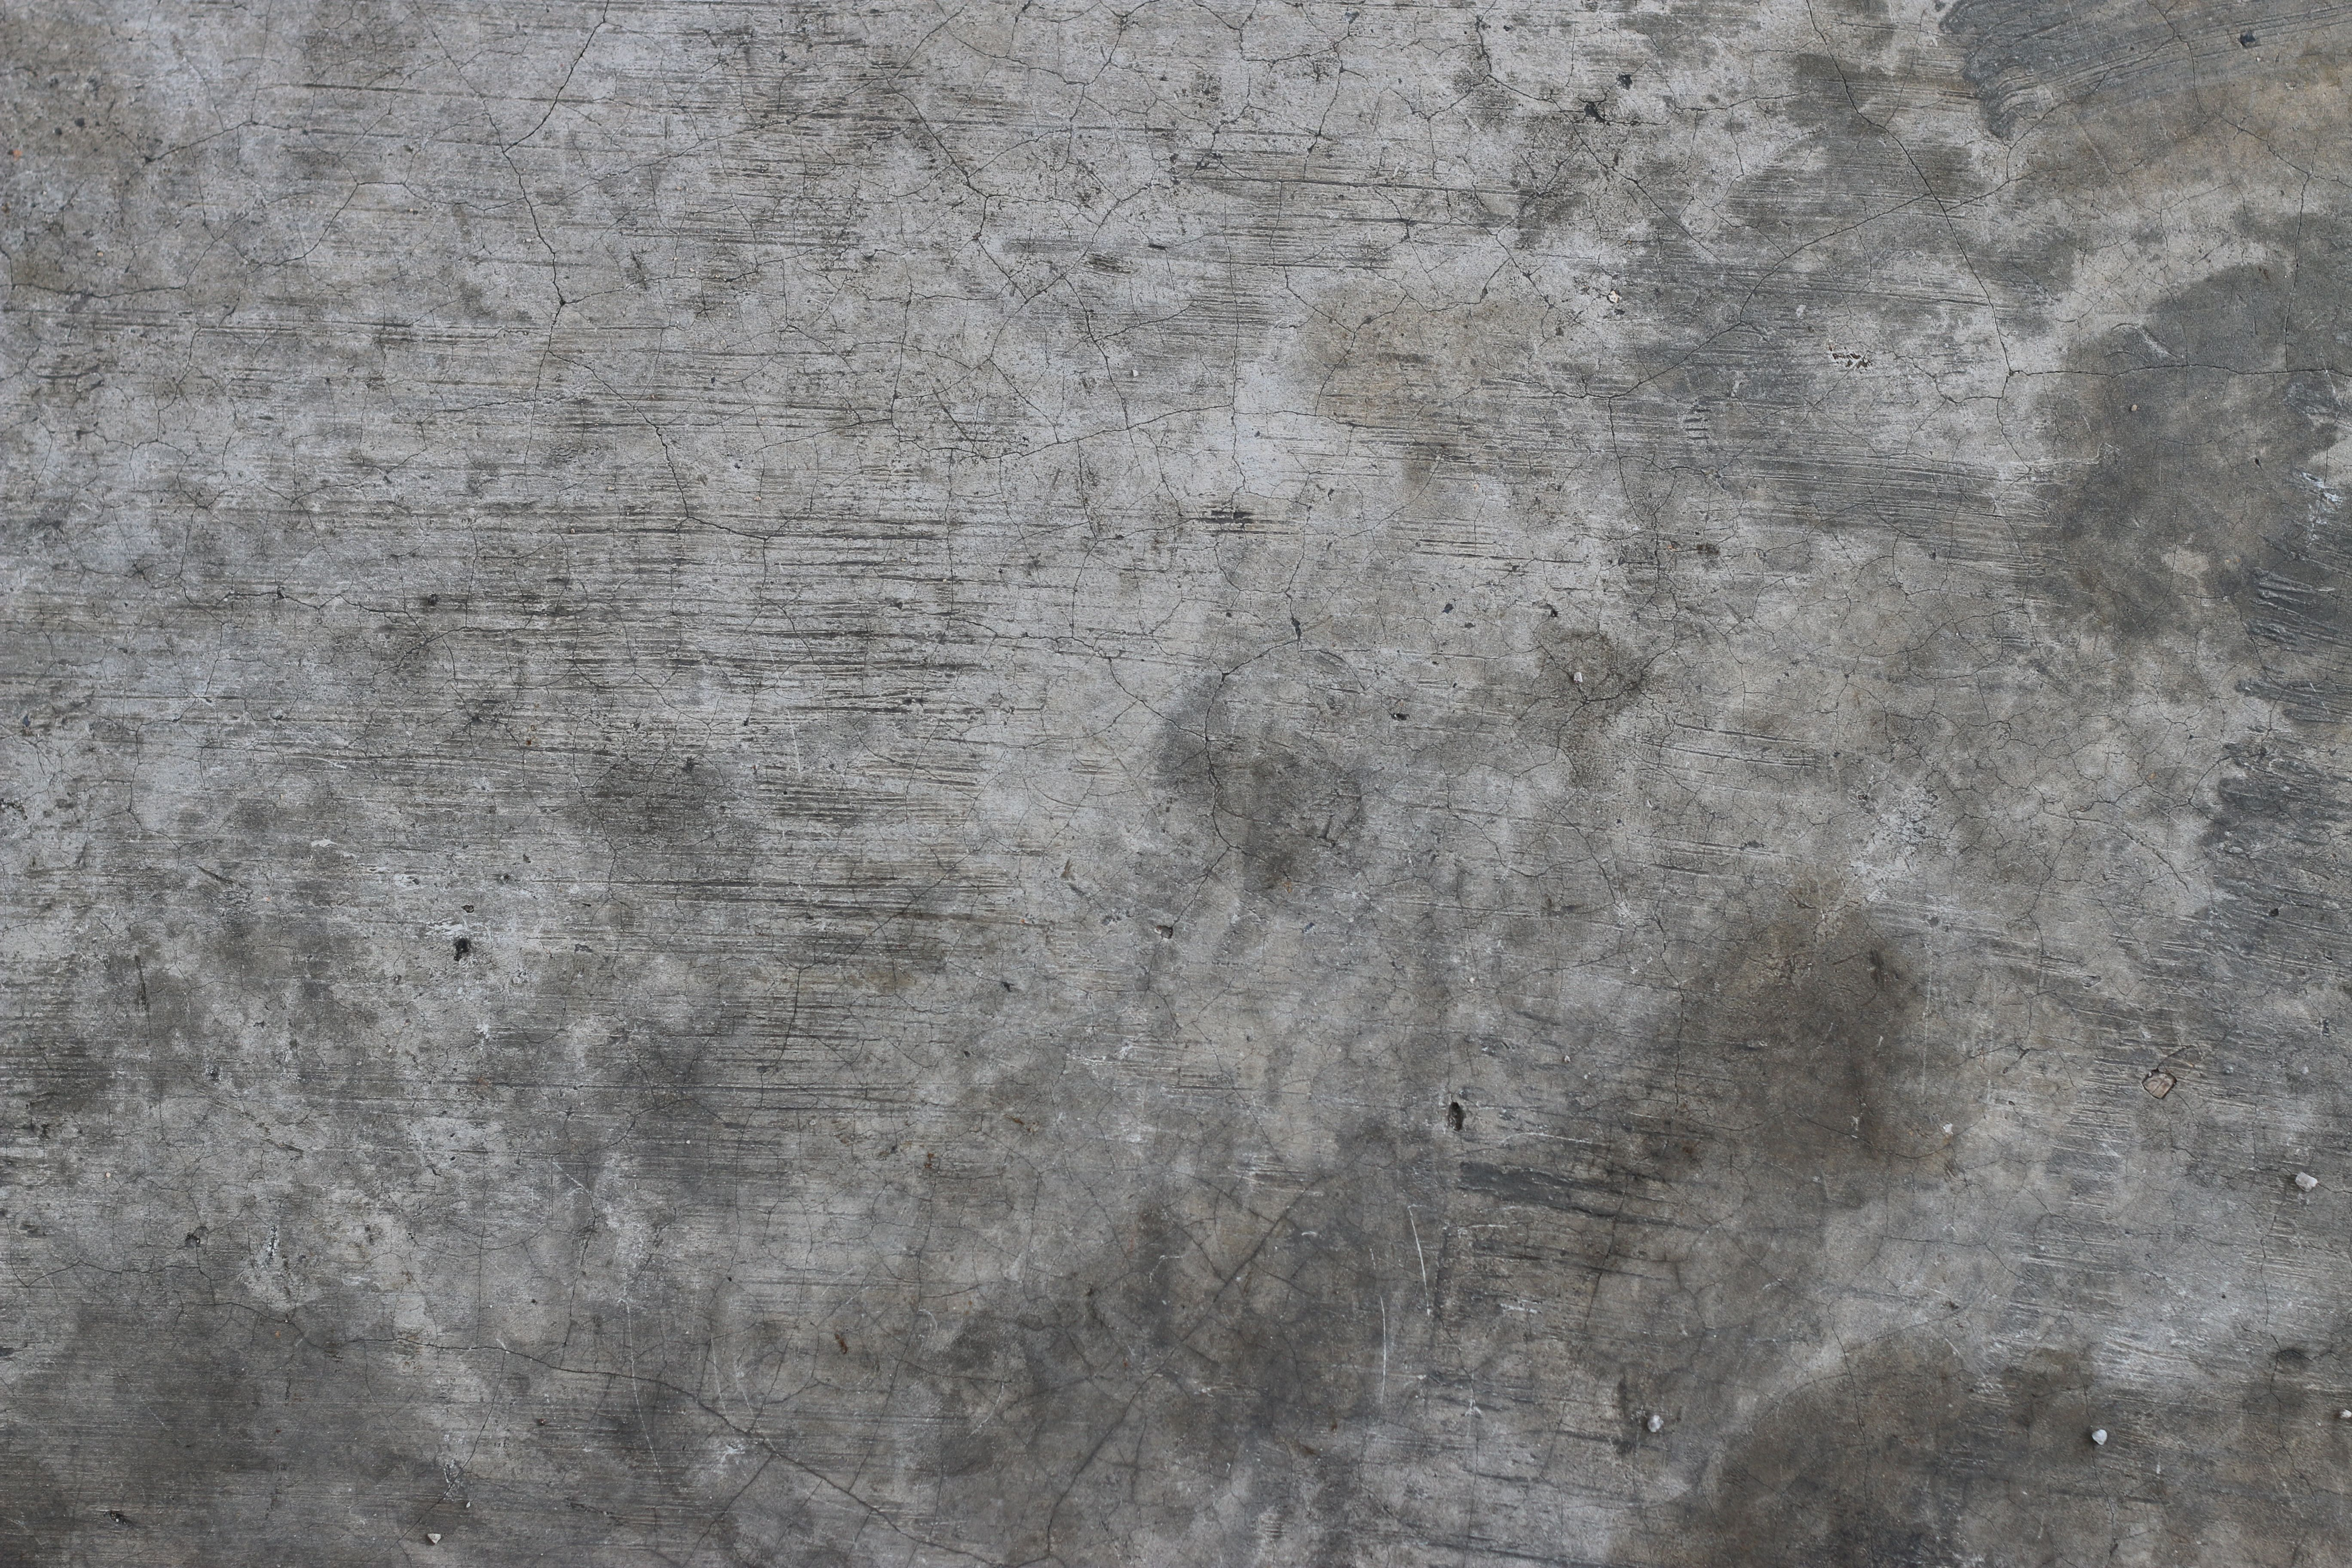 Concrete texture pesquisa google kindergarten for Smooth concrete texture